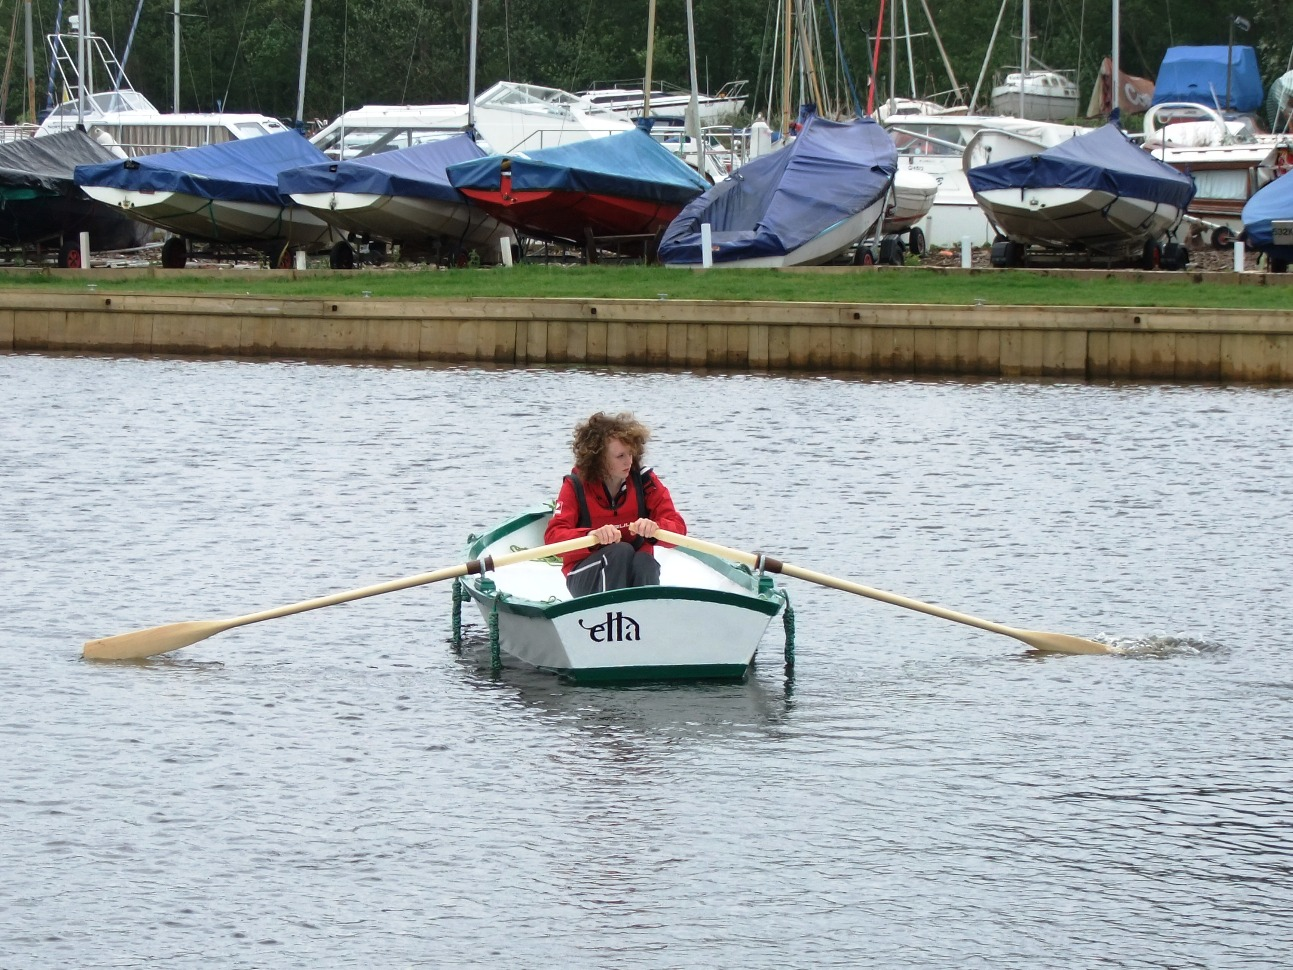 We try the rowing version of the Ella stitch and glue skiff at Barton ...